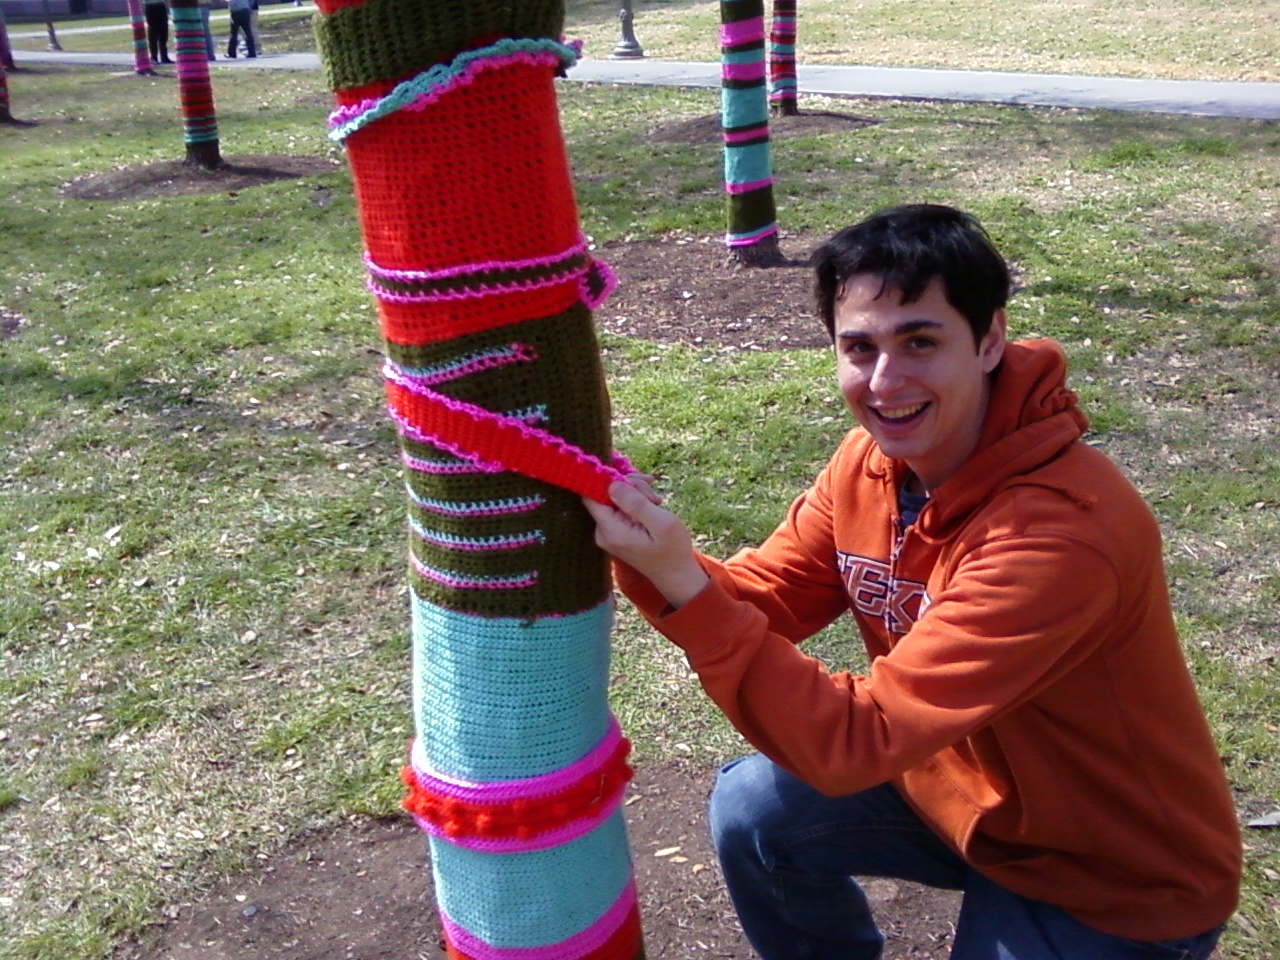 Luis and the yarn trees